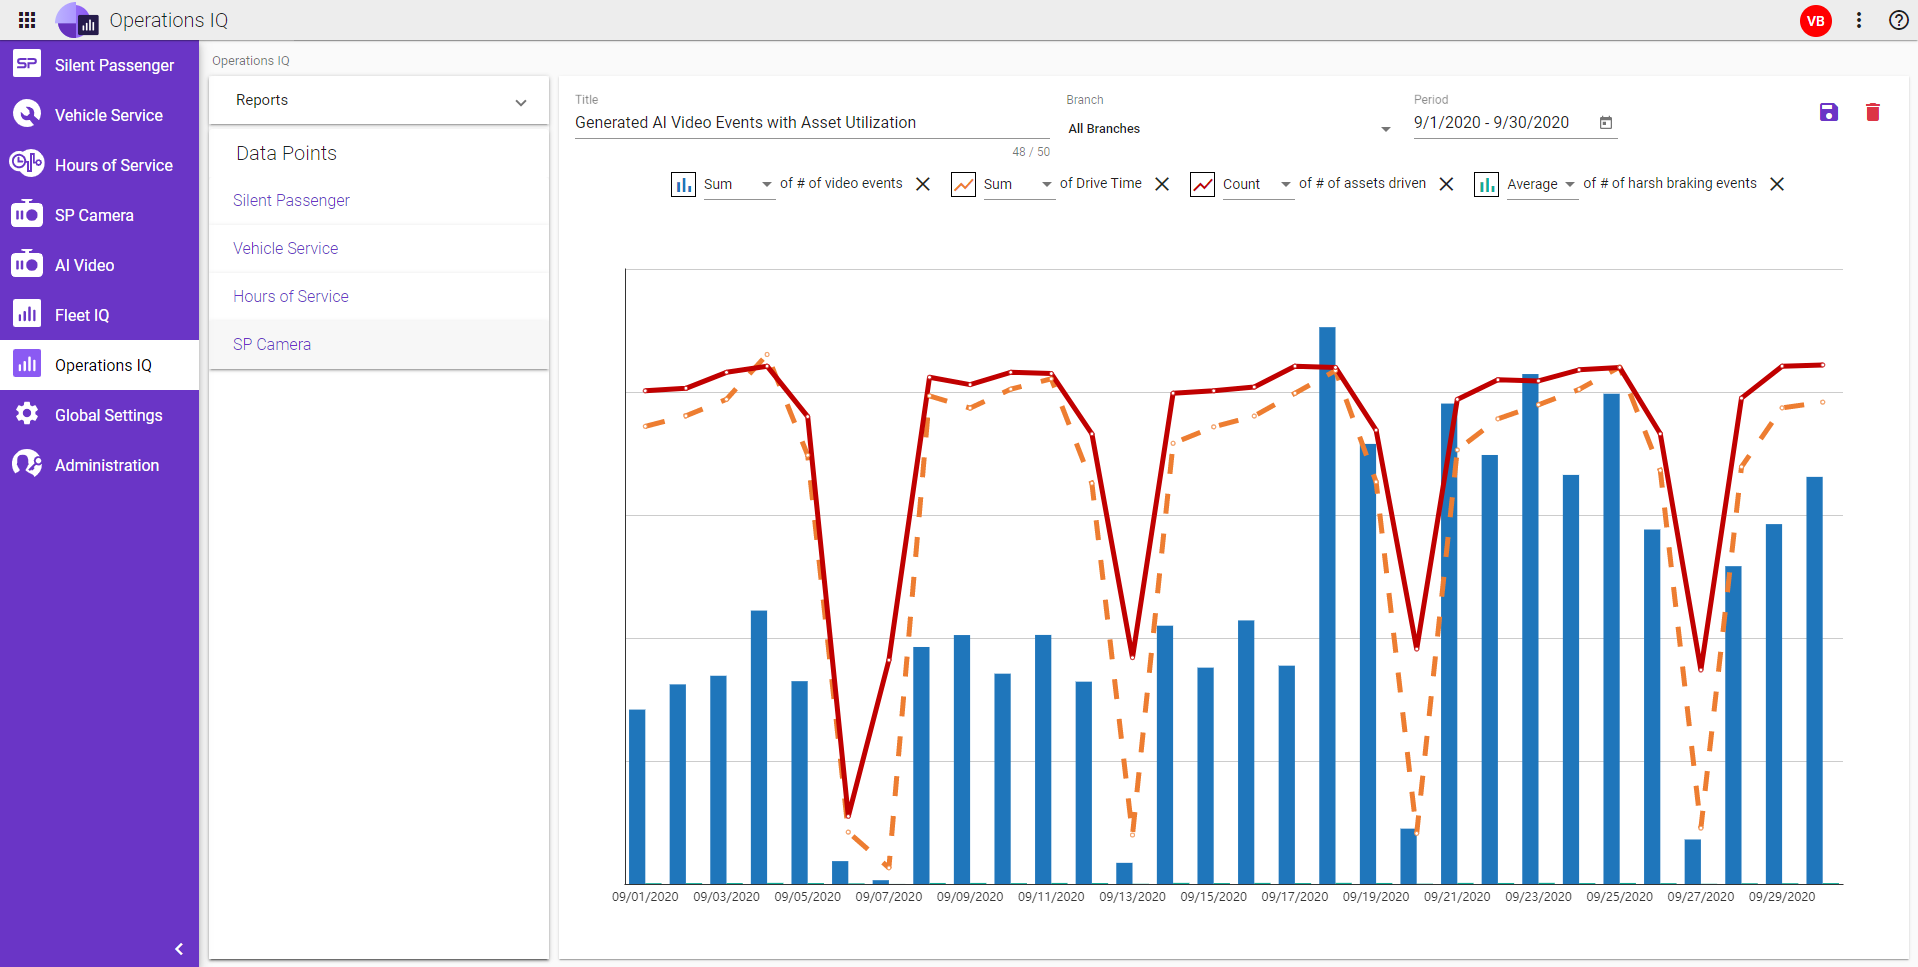 IntelliShift Software - Operations IQ combines all data into custom reports and dashboards %>